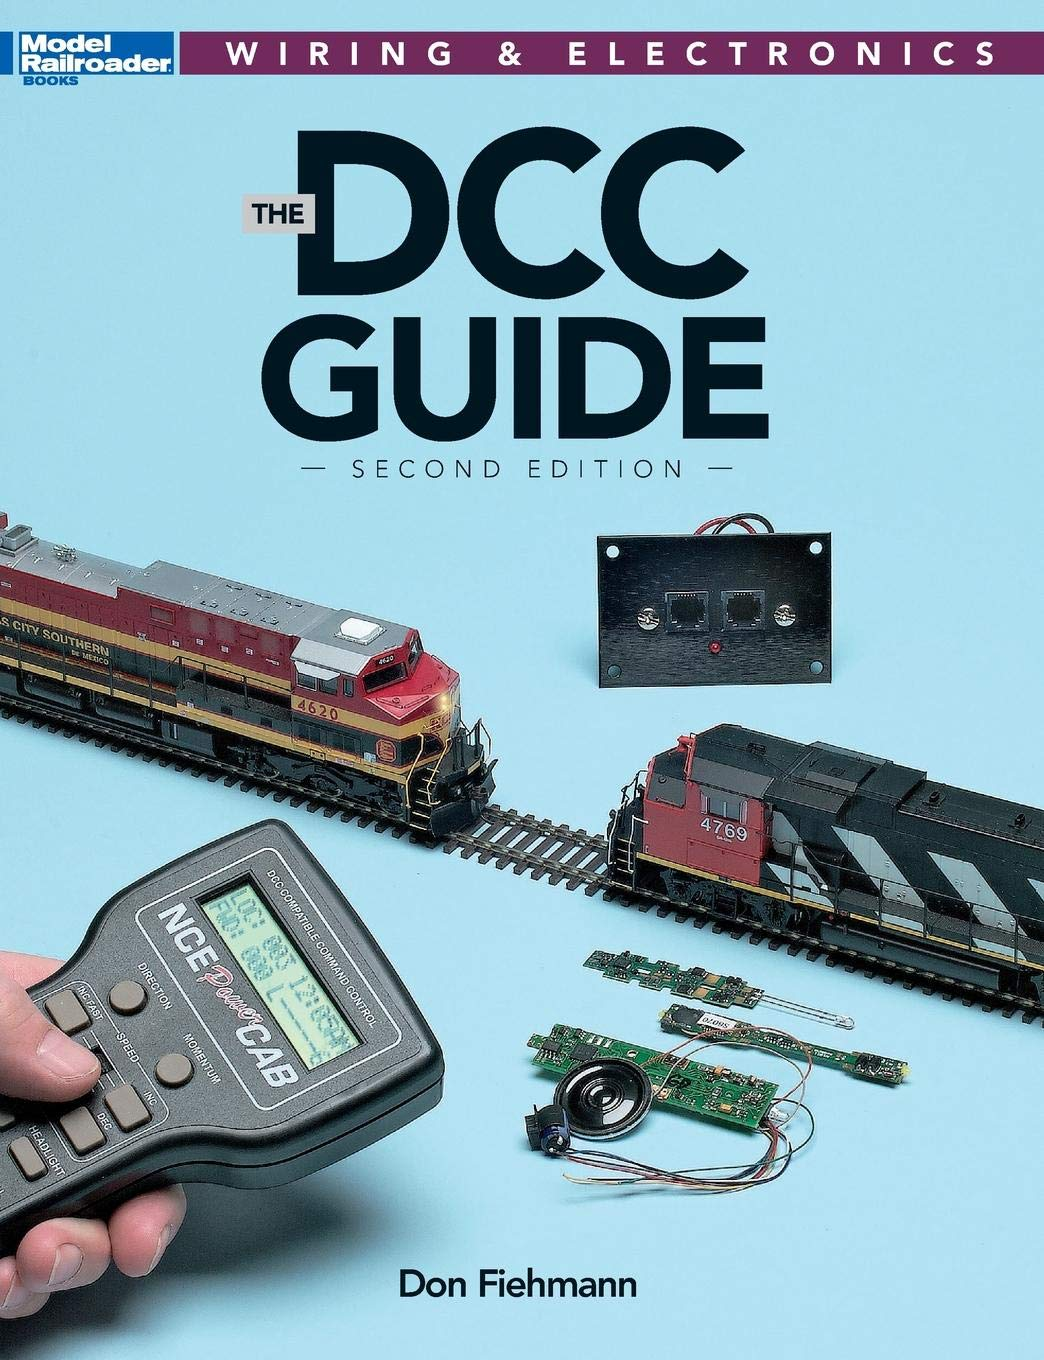 Download The DCC Guide, Second Edition (Model Railroader Books: Wiring & Electronics) ebook